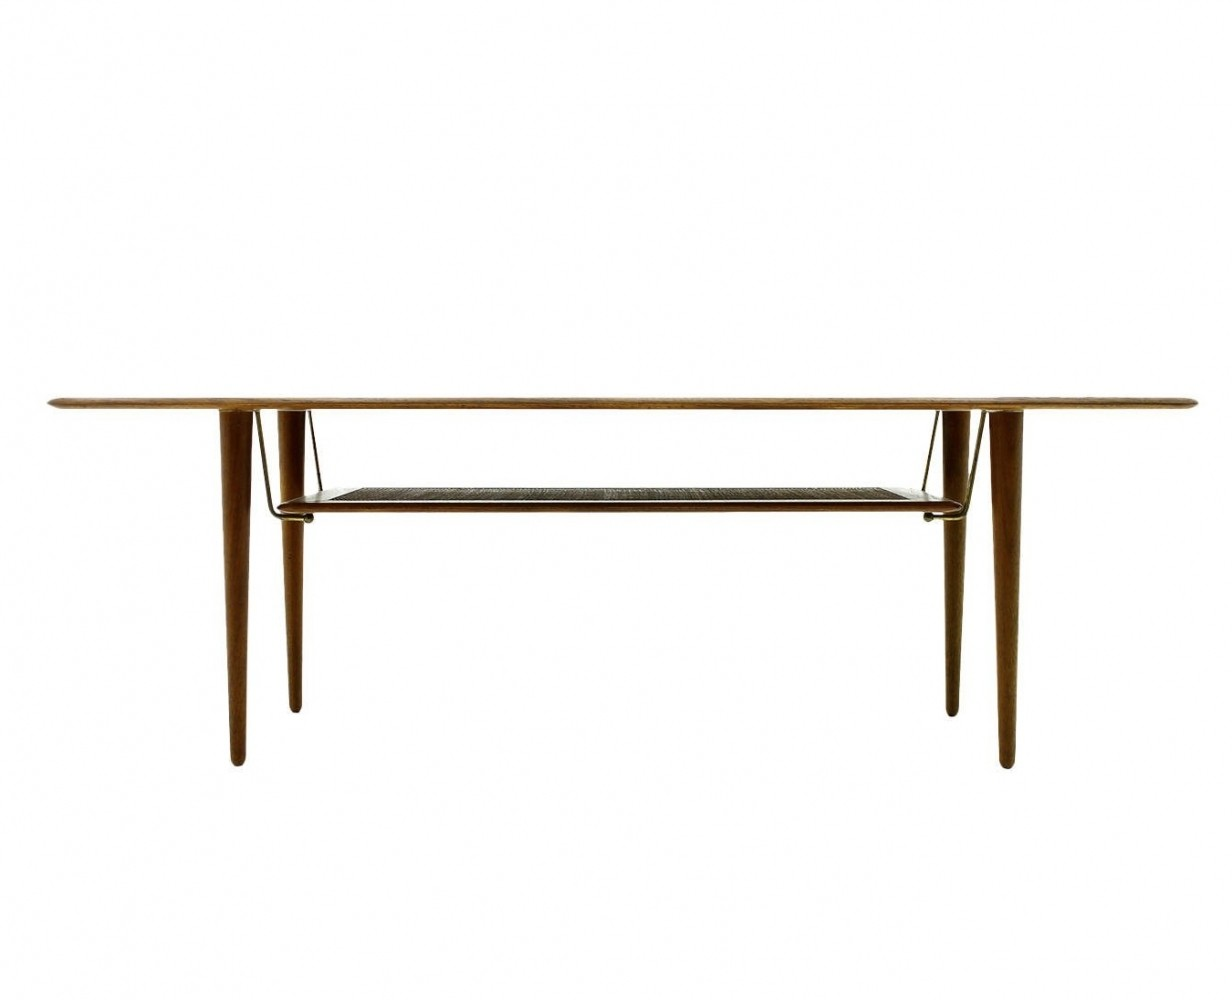 FD 516 coffee table by Peter Hvidt & Orla Mølgaard Nielsen for France & Daverkosen, 1950s